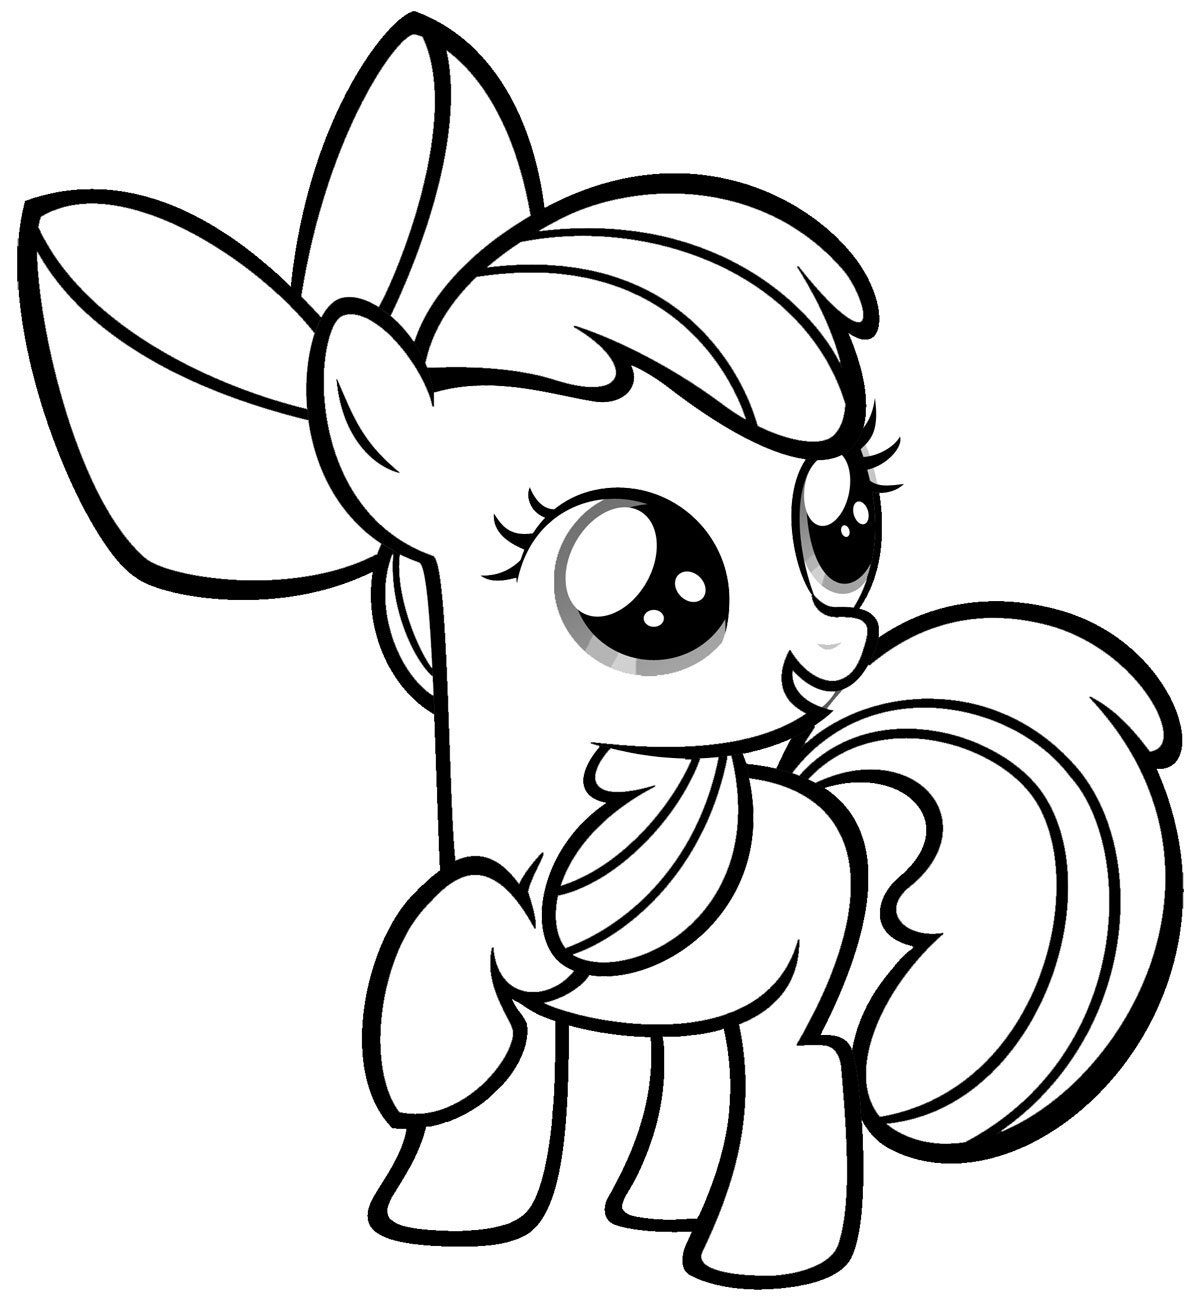 Free Printable My Little Pony Coloring Pages For Kids | Books Worth - Free Printable My Little Pony Coloring Pages